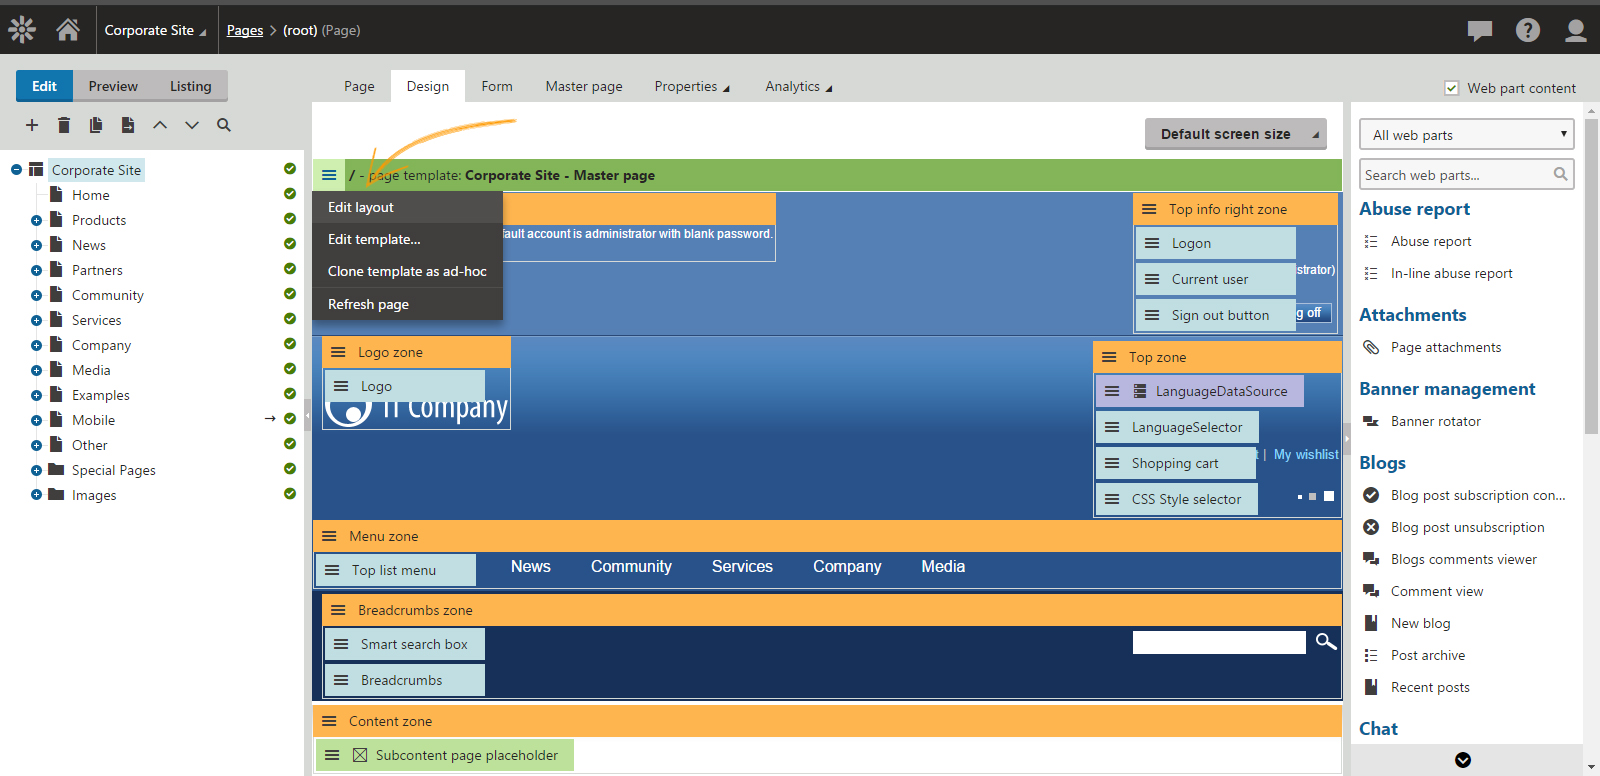 Log in to your Kentico CMS admin panel